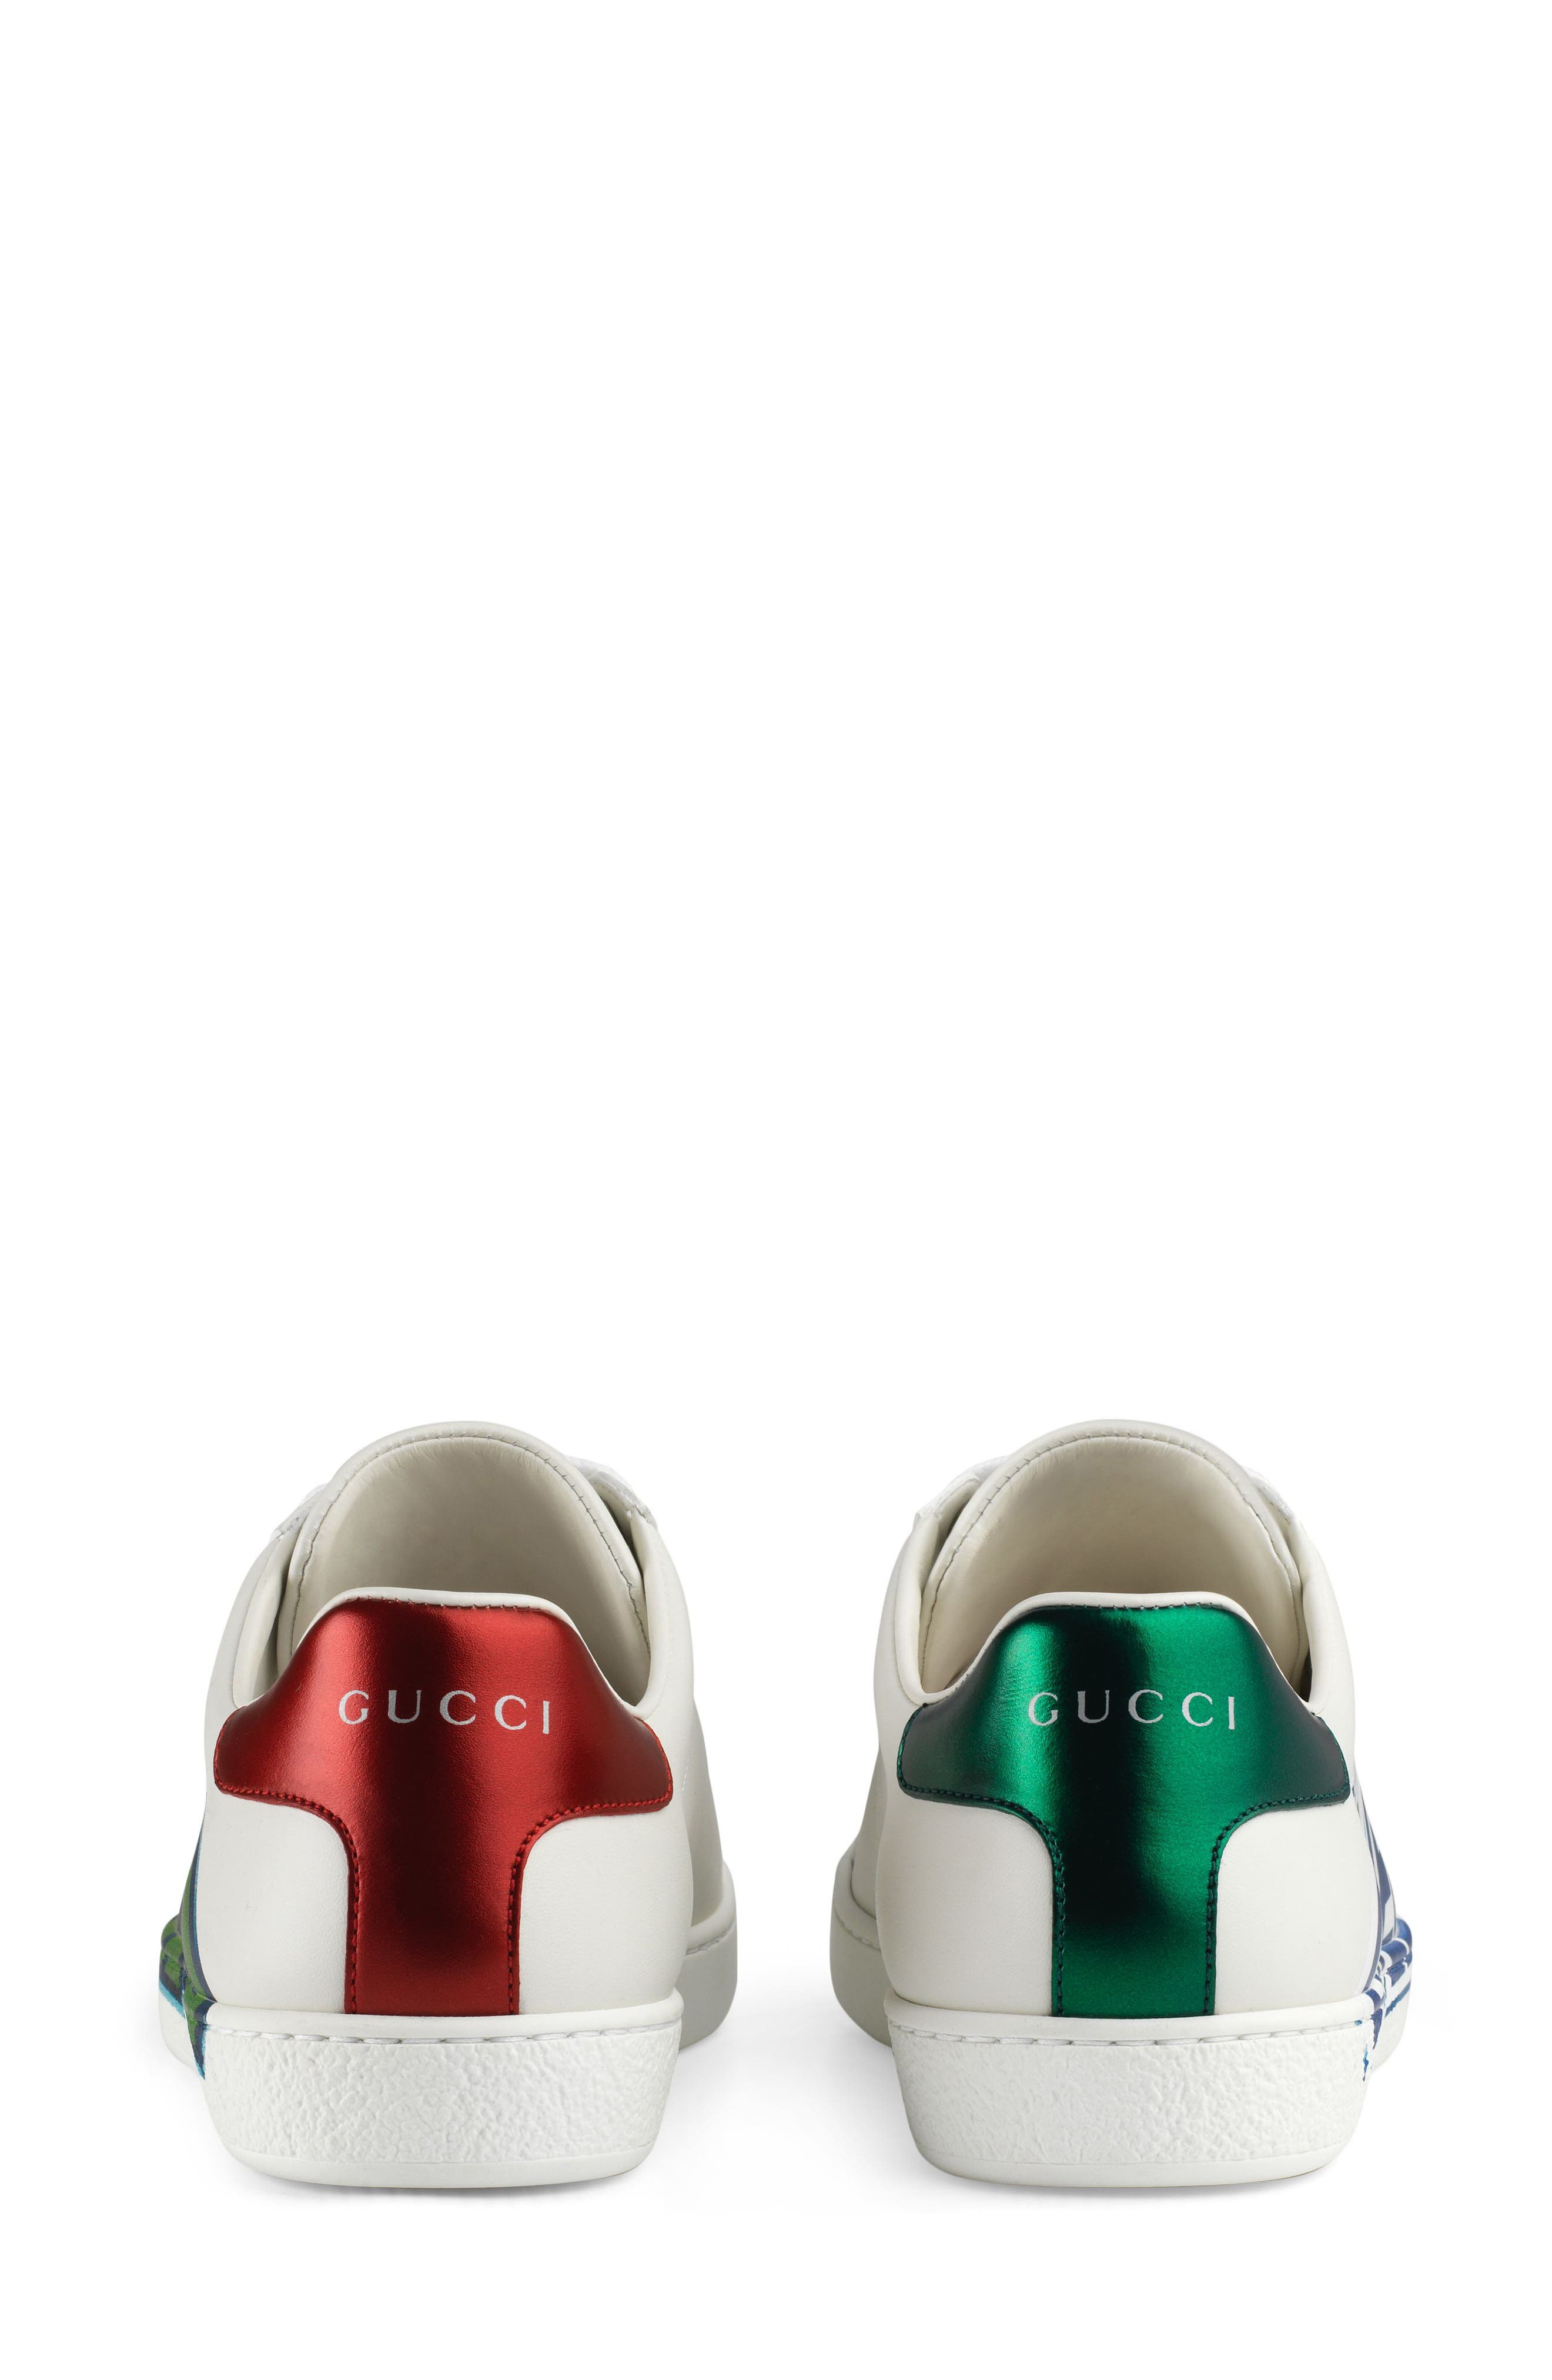 GUCCI,                             New Ace Loved Sneaker,                             Alternate thumbnail 5, color,                             WHITE